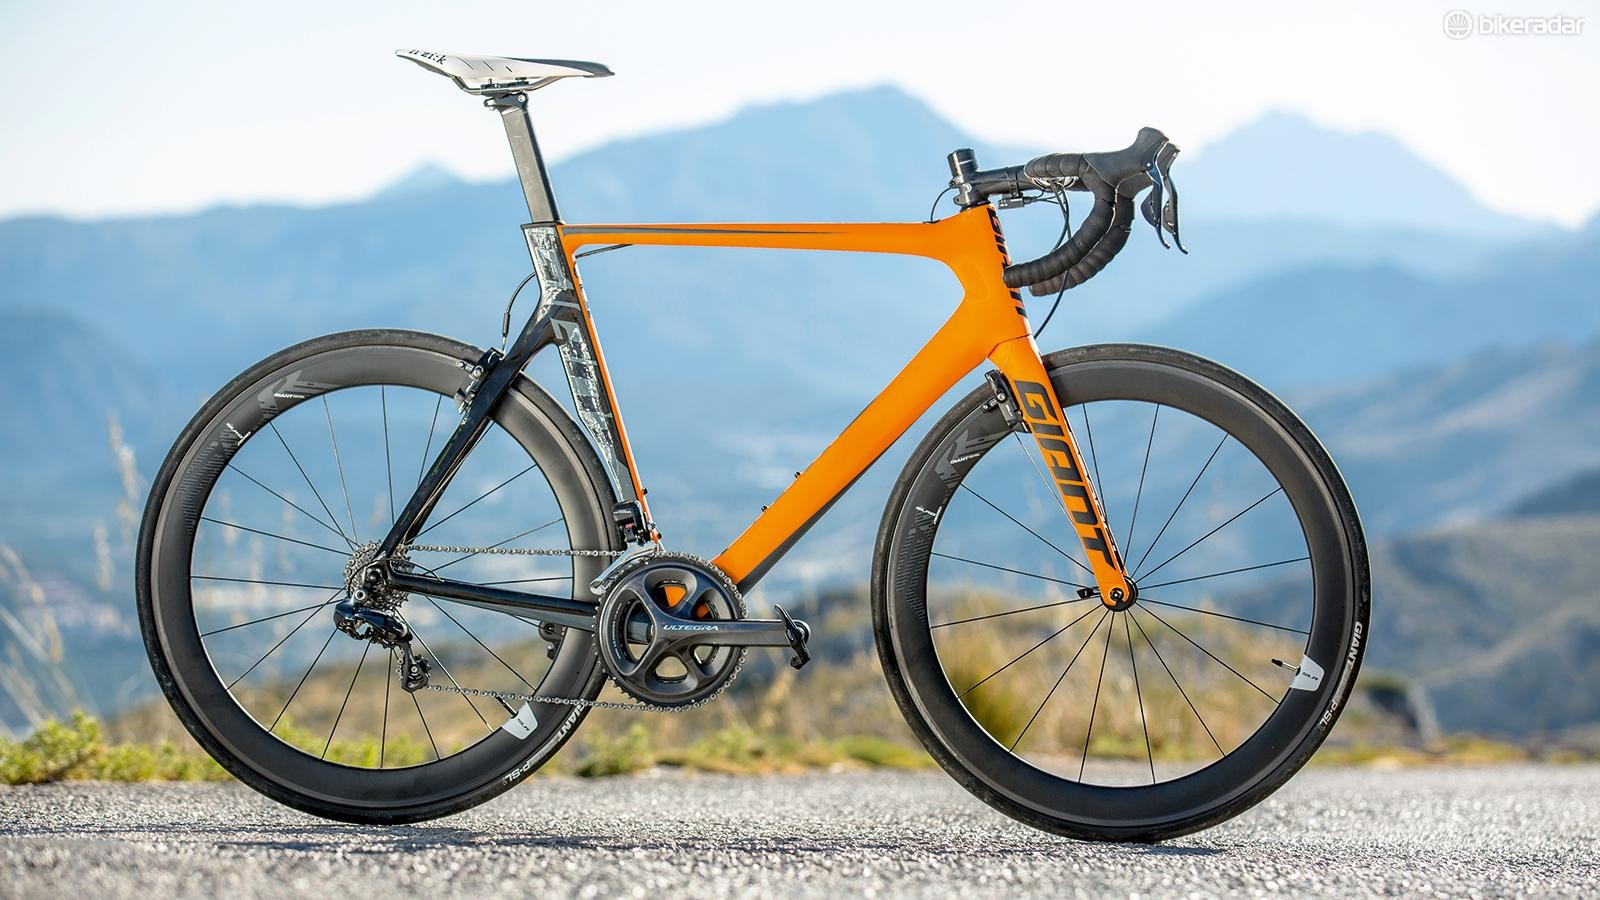 The Giant Propel Advanced Pro 0 is scorchingly fast, but suffered from a few high-speed jitters in testing